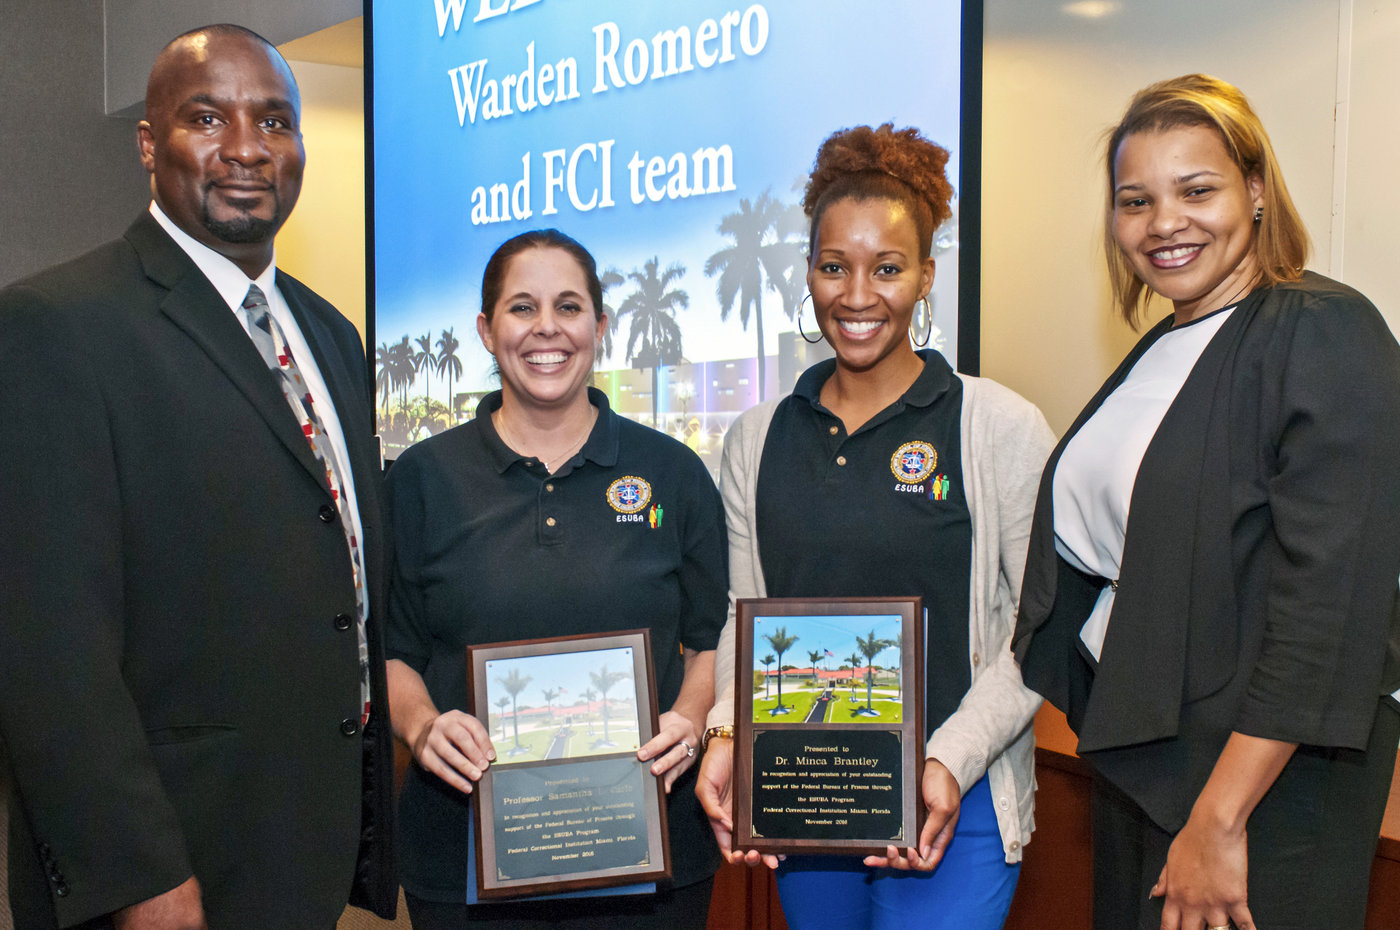 Left to right: Florida Correctional Institution (FCI) Warden Romero, MDC professors Samantha Carlo and Minca Davis-Brantley, and FCI's Angie Acevedo